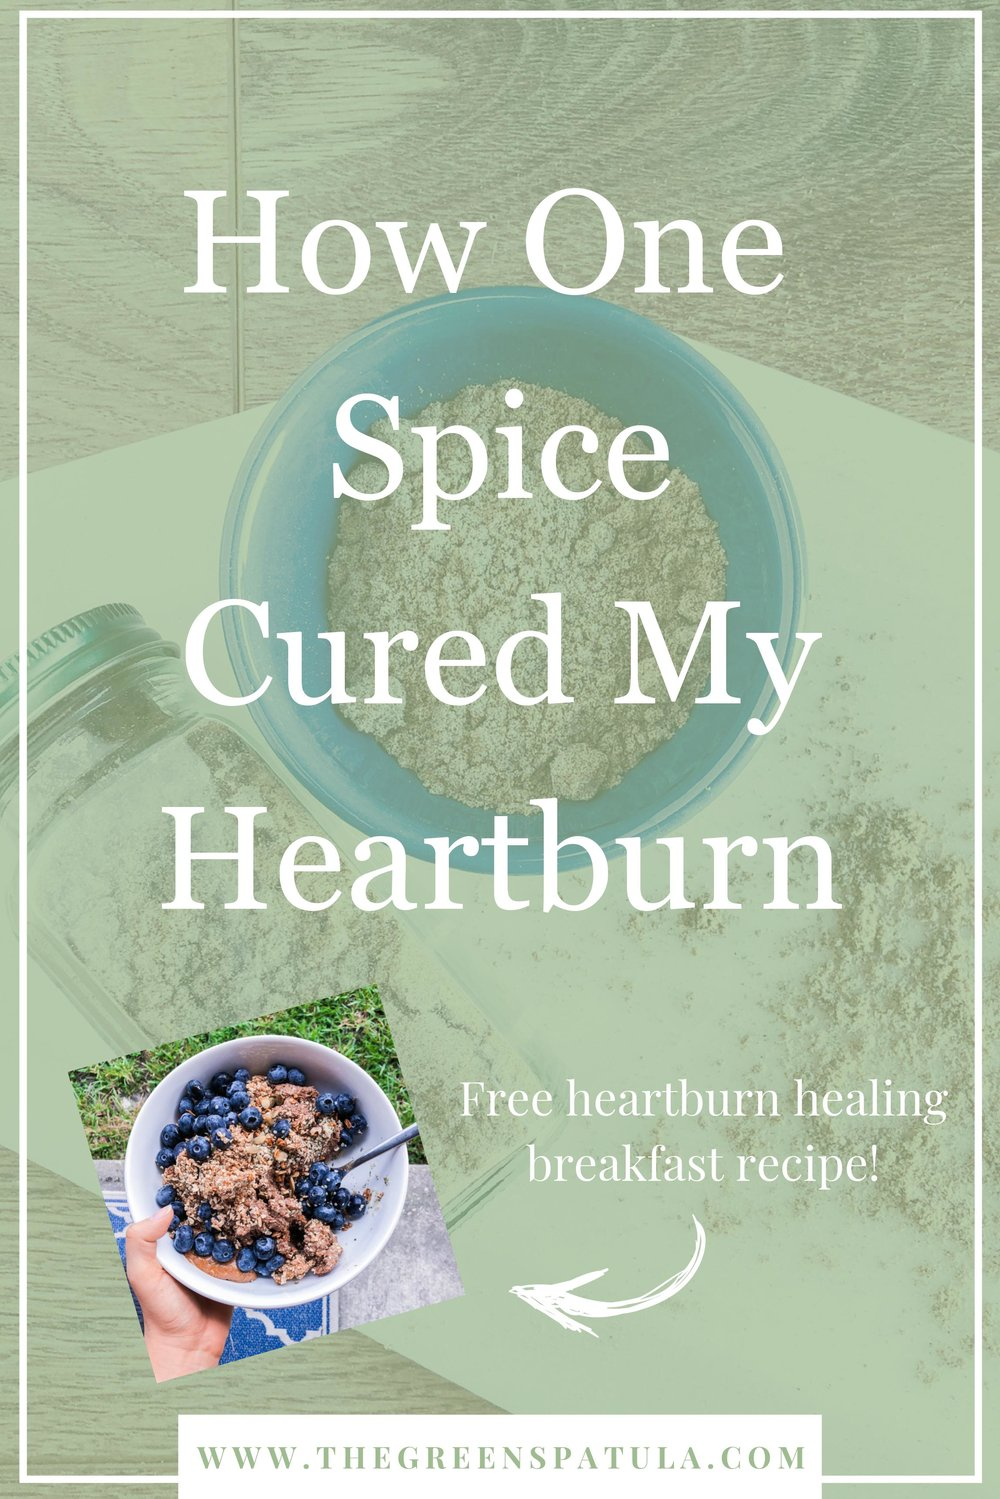 Discover how 1 spice cured my heartburn! Alleviate the burning discomfort from your life for good without drugs or medications. If you suffer from heartburn or acid reflux or any digestion issues, this is the blog for you. #heartburn #foodismedicine #vegan #plantbased #holistichealth #drugfree #spice #cleaneating